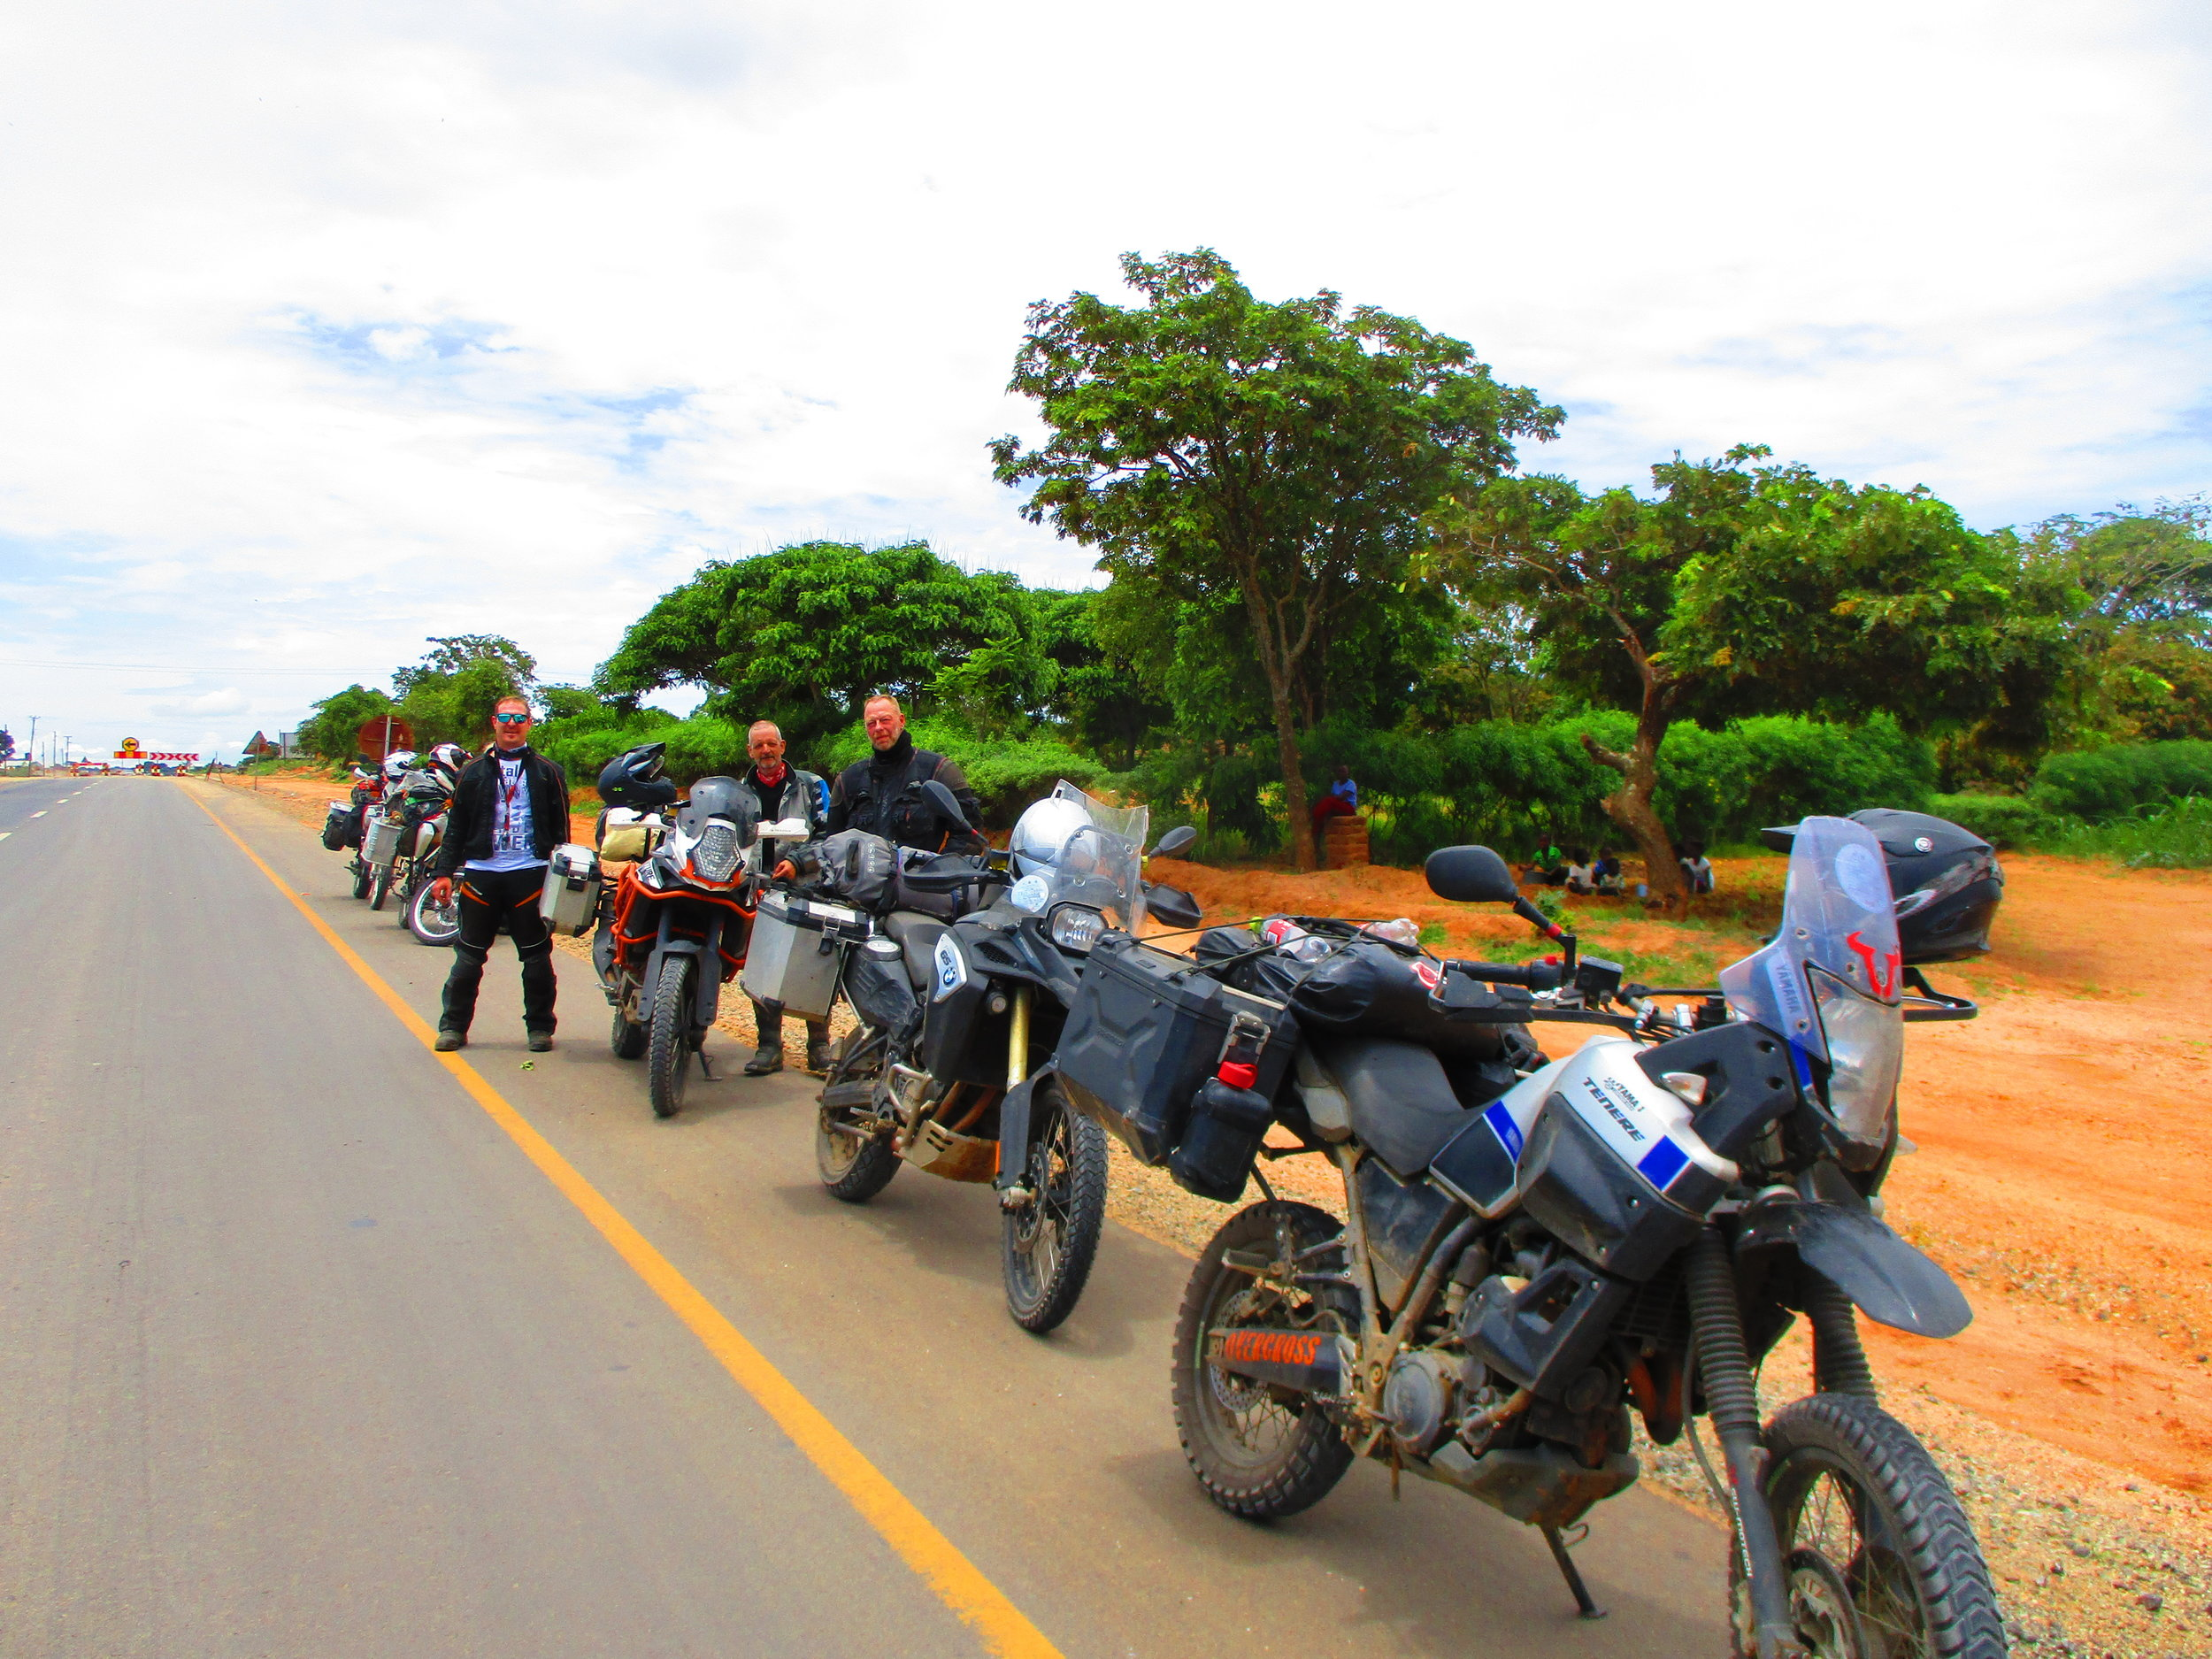 We met some fellow overlanders from Germany on the road to Chipata